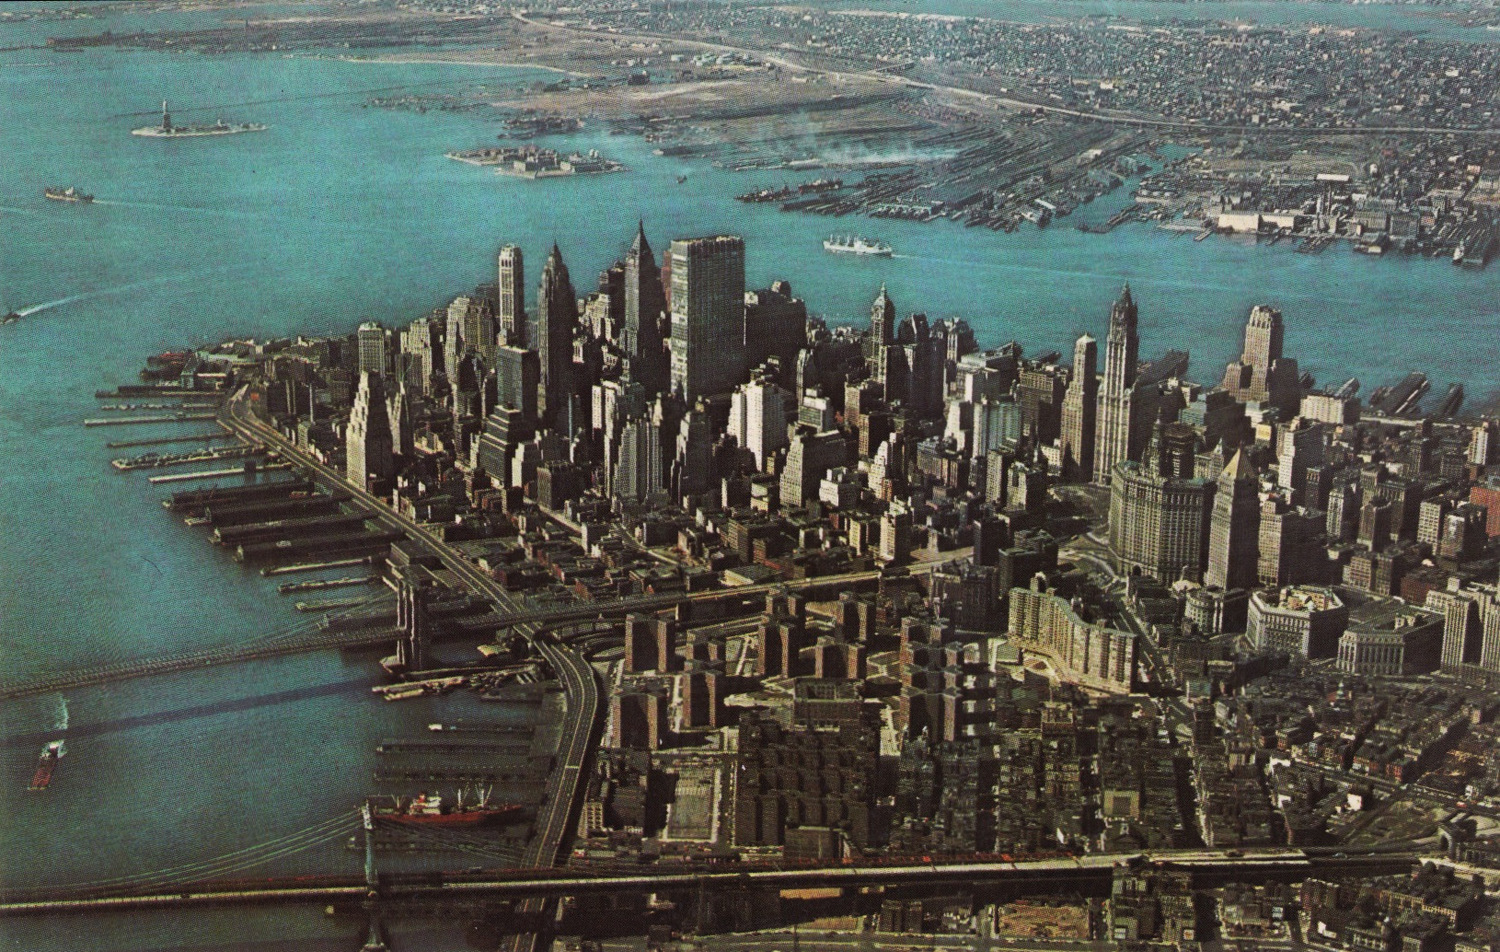 Looking south in 1964 towards the financial district.